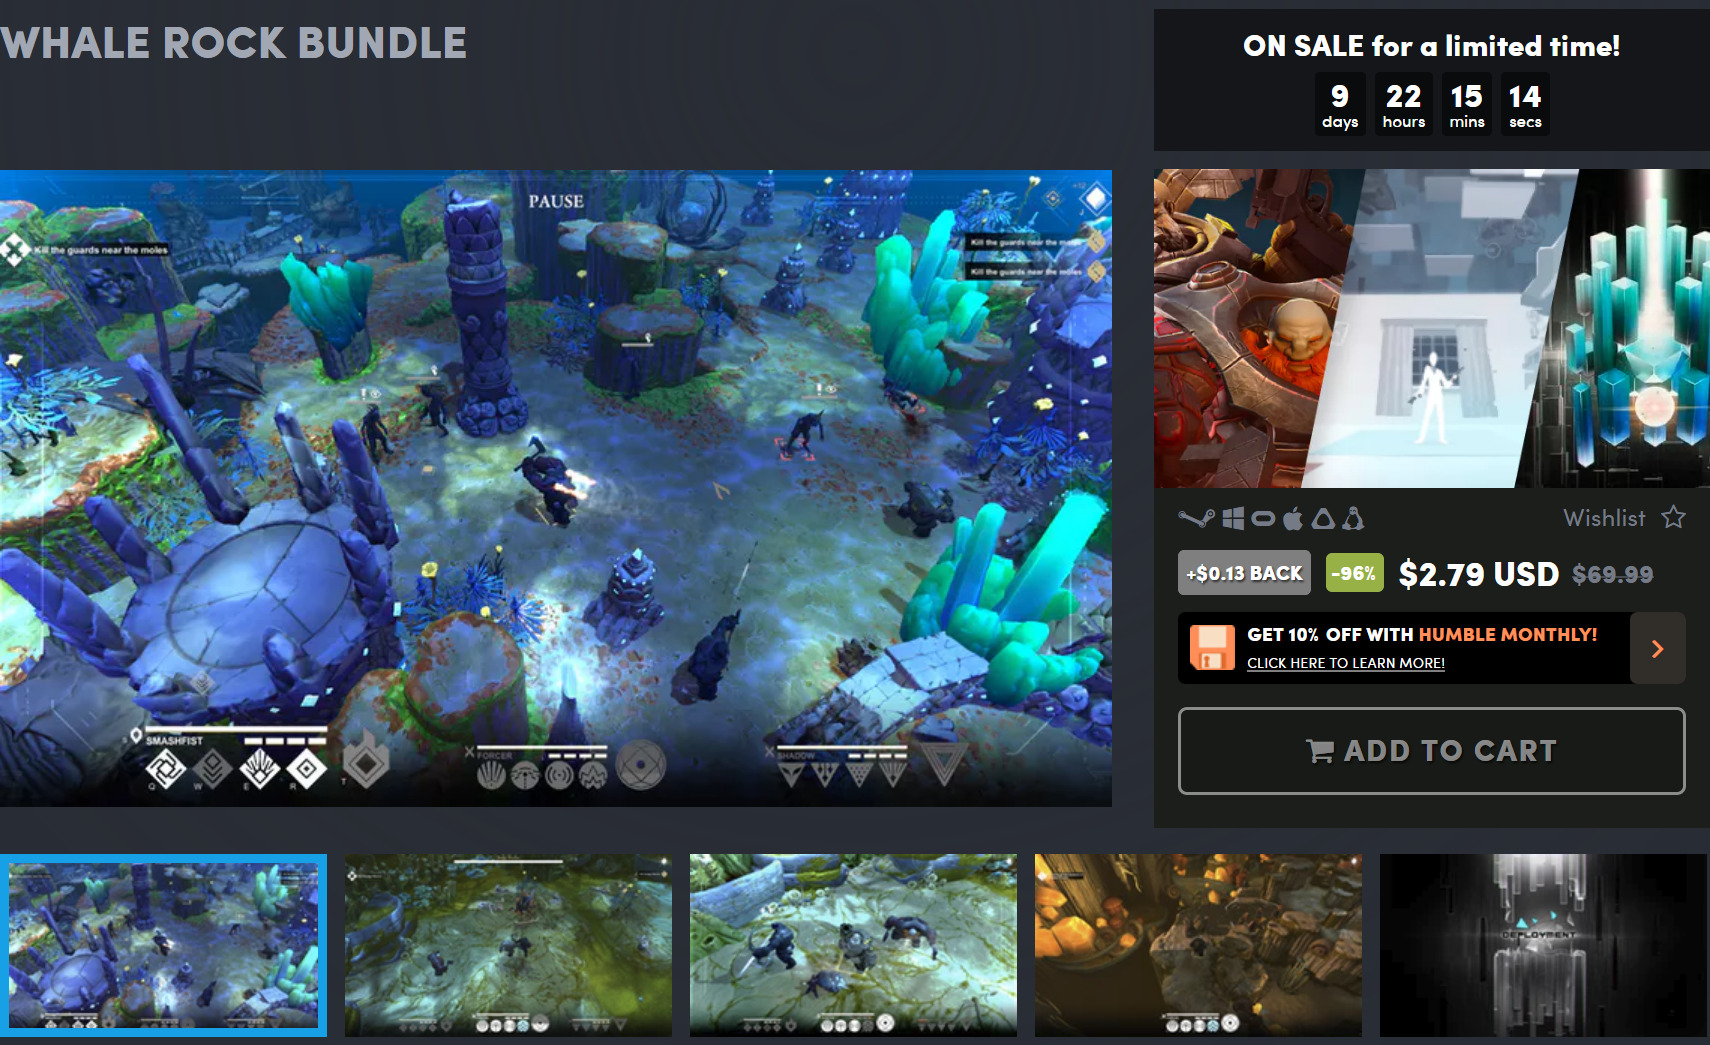 Screenshot_2019-01-22 Buy Whale Rock Bundle from the Humble Store.jpg